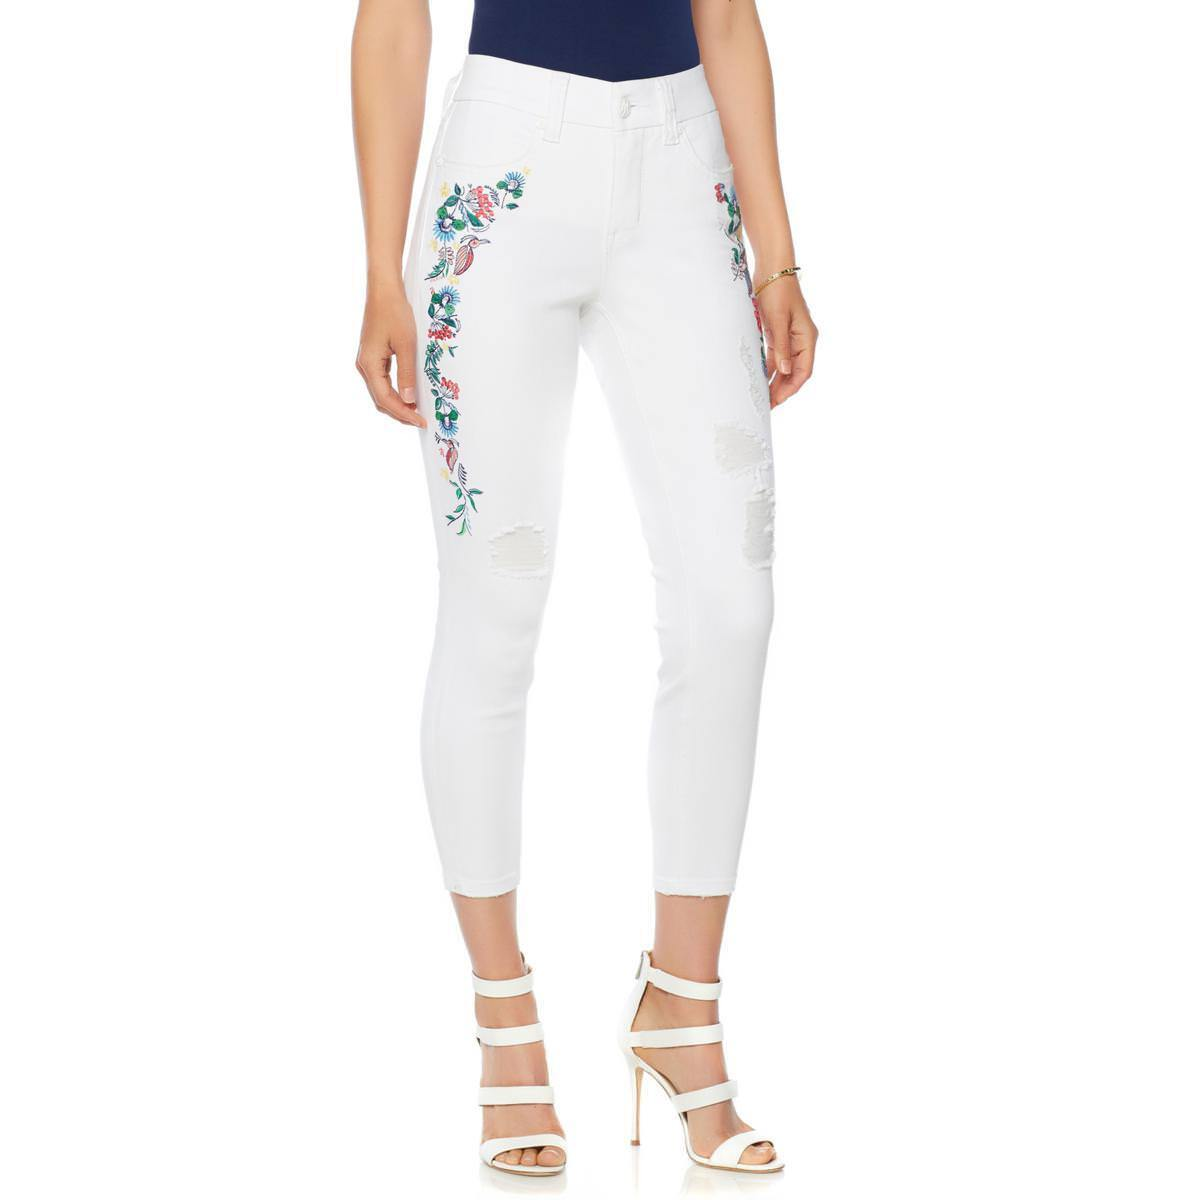 Melissa McCarthy Seven7 Floral Embroidered Pencil Jean - Missy White Size 16 HSN